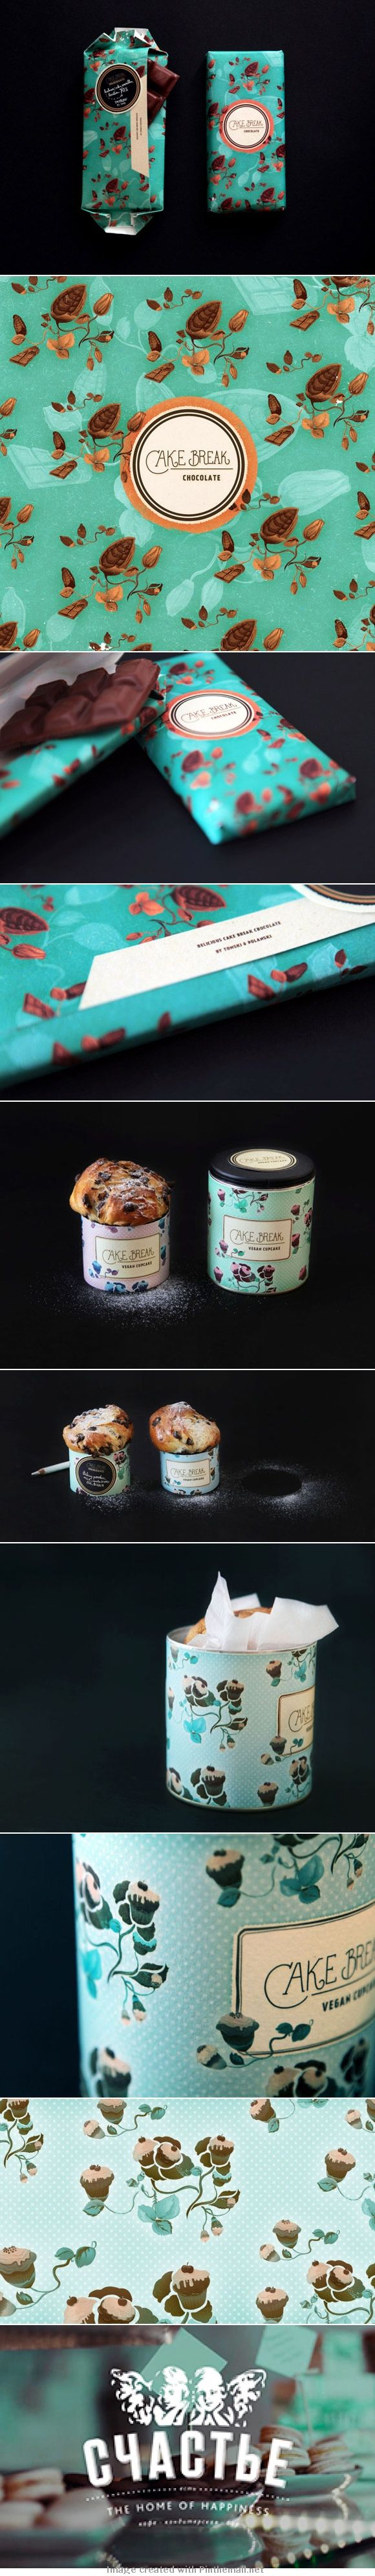 Let's take cake and coffee break #packaging PD - created via http://wtpack.ru/daily/tomski-polanski/